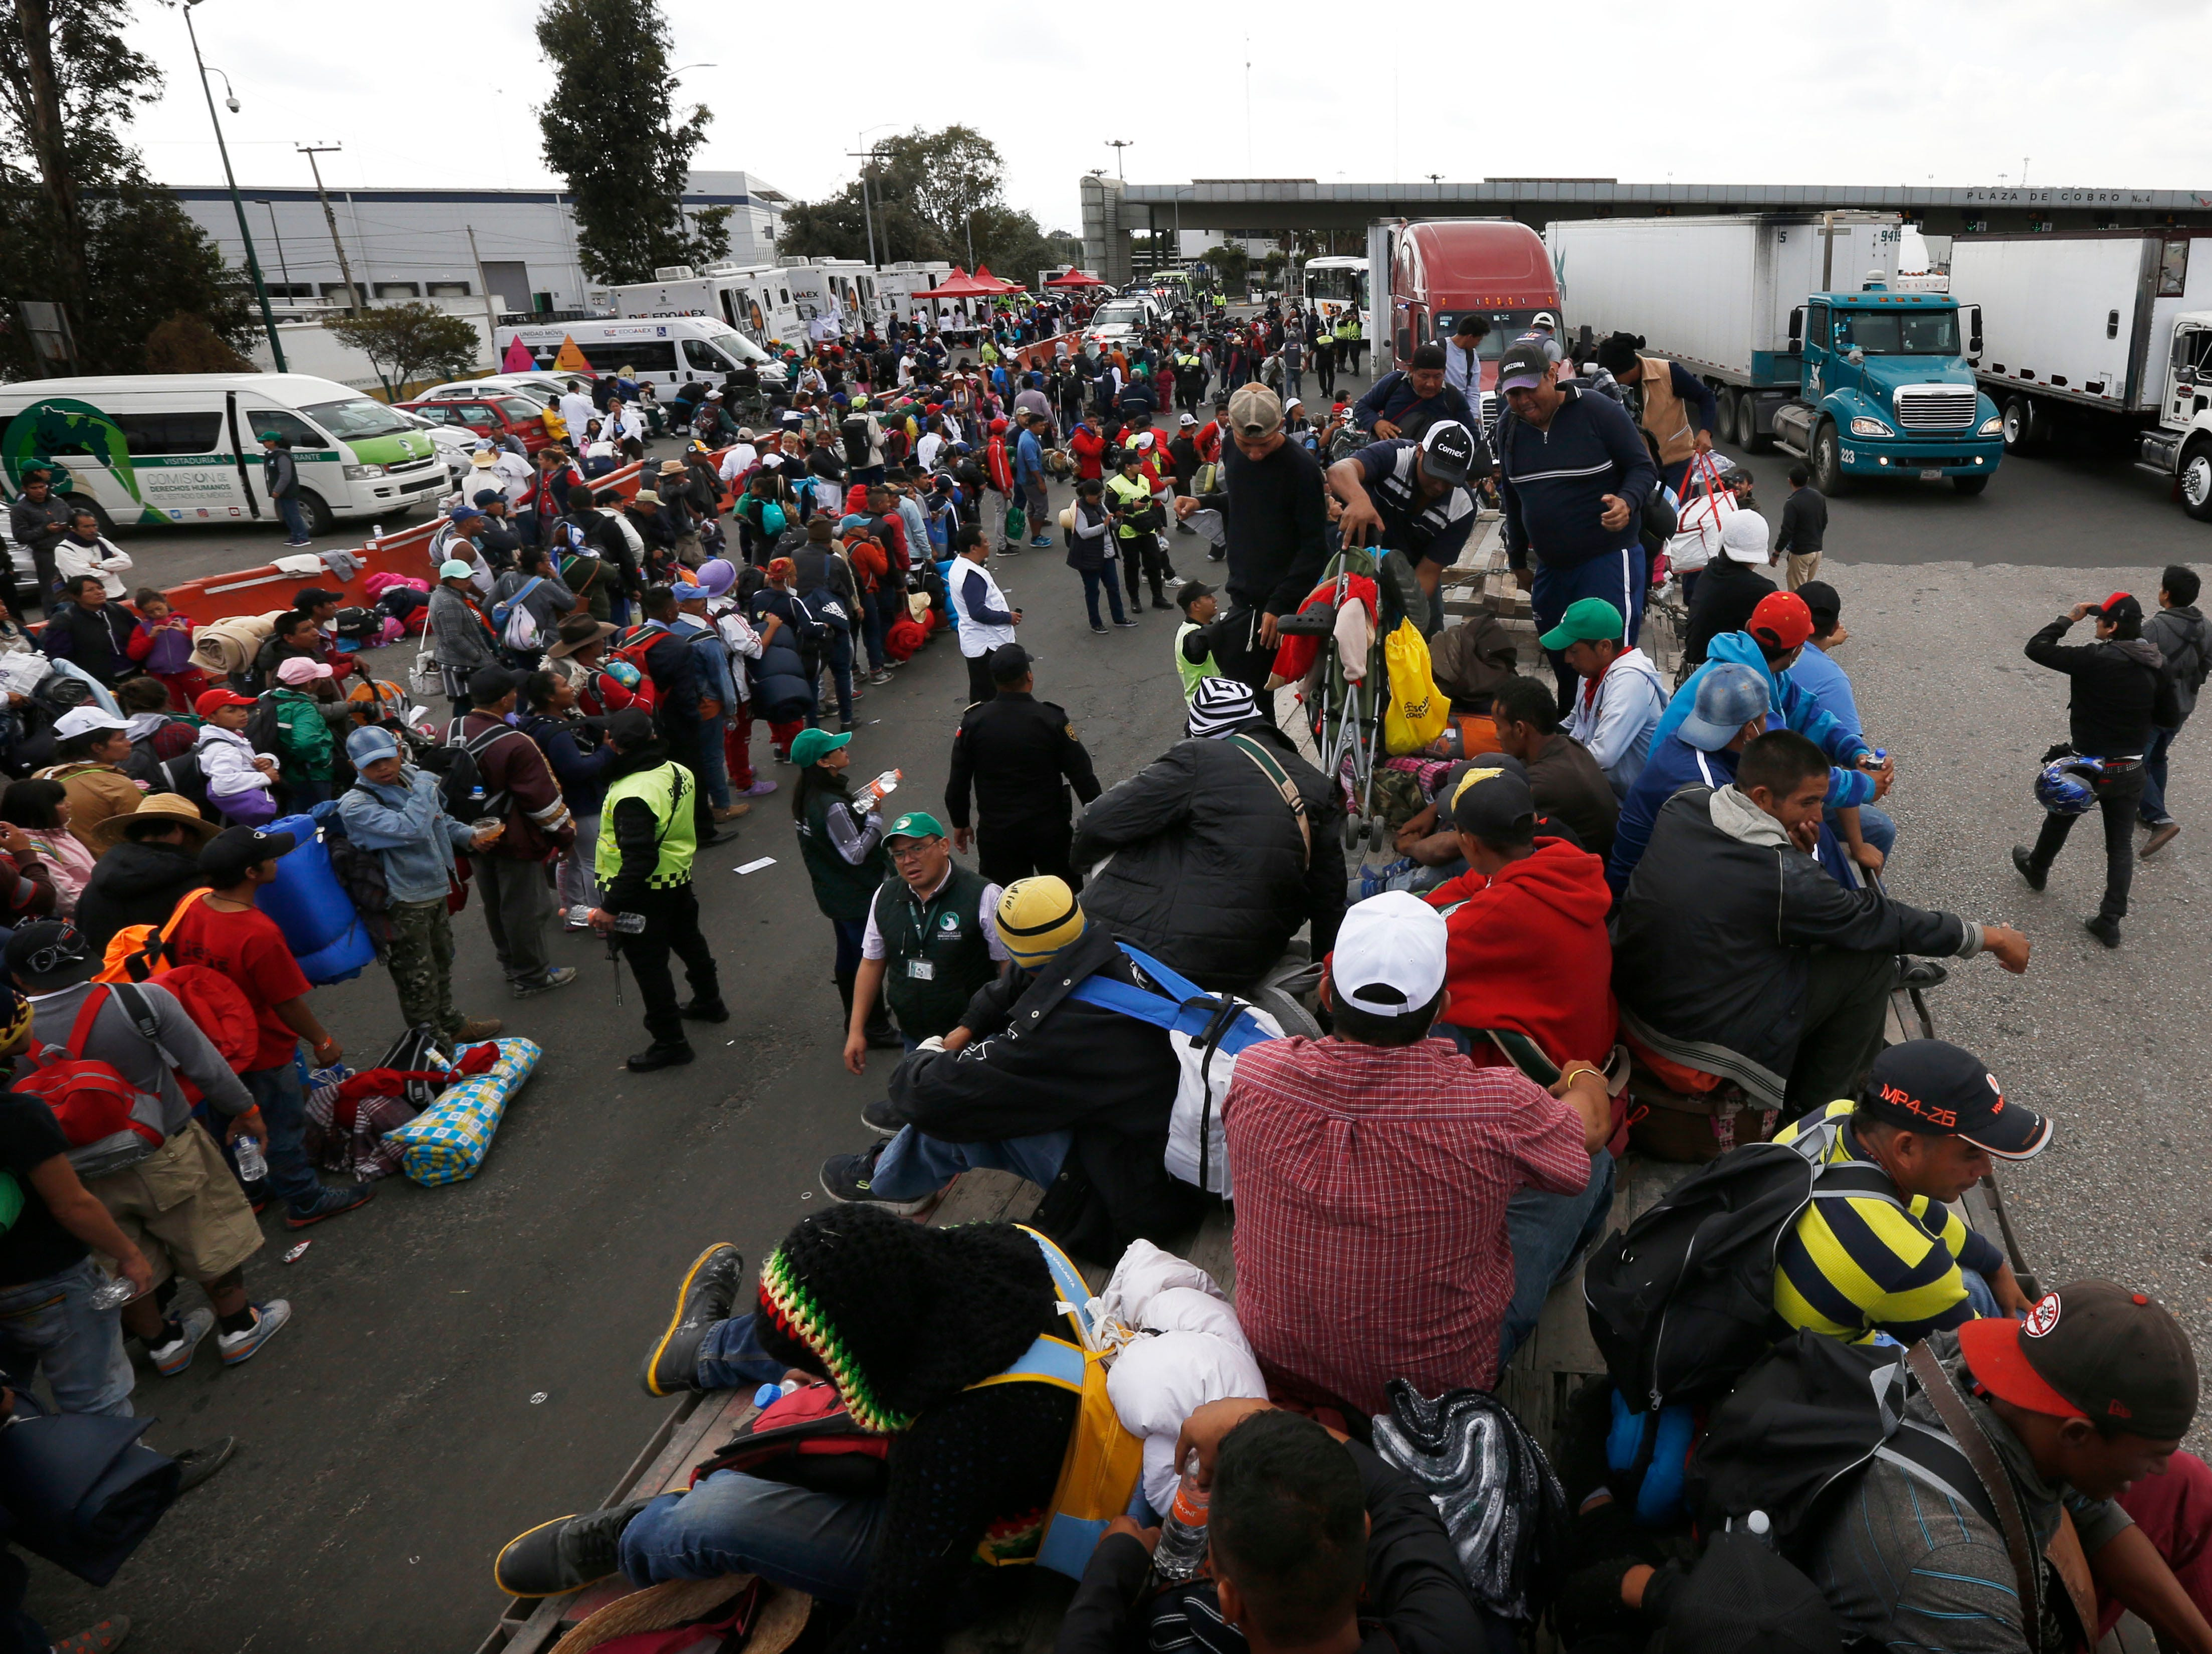 Central American migrants stand in line hoping to hitch a ride in Tepotzotlan, Mexico, as they resume their journey north after leaving the temporary shelter at the Jesus Martinez stadium, Saturday, Nov. 10, 2018. Thousands of Central American migrants were back on the move toward the U.S. border Saturday, after dedicated Mexico City metro trains whisked them to the outskirts of the capital and drivers began offering rides north.